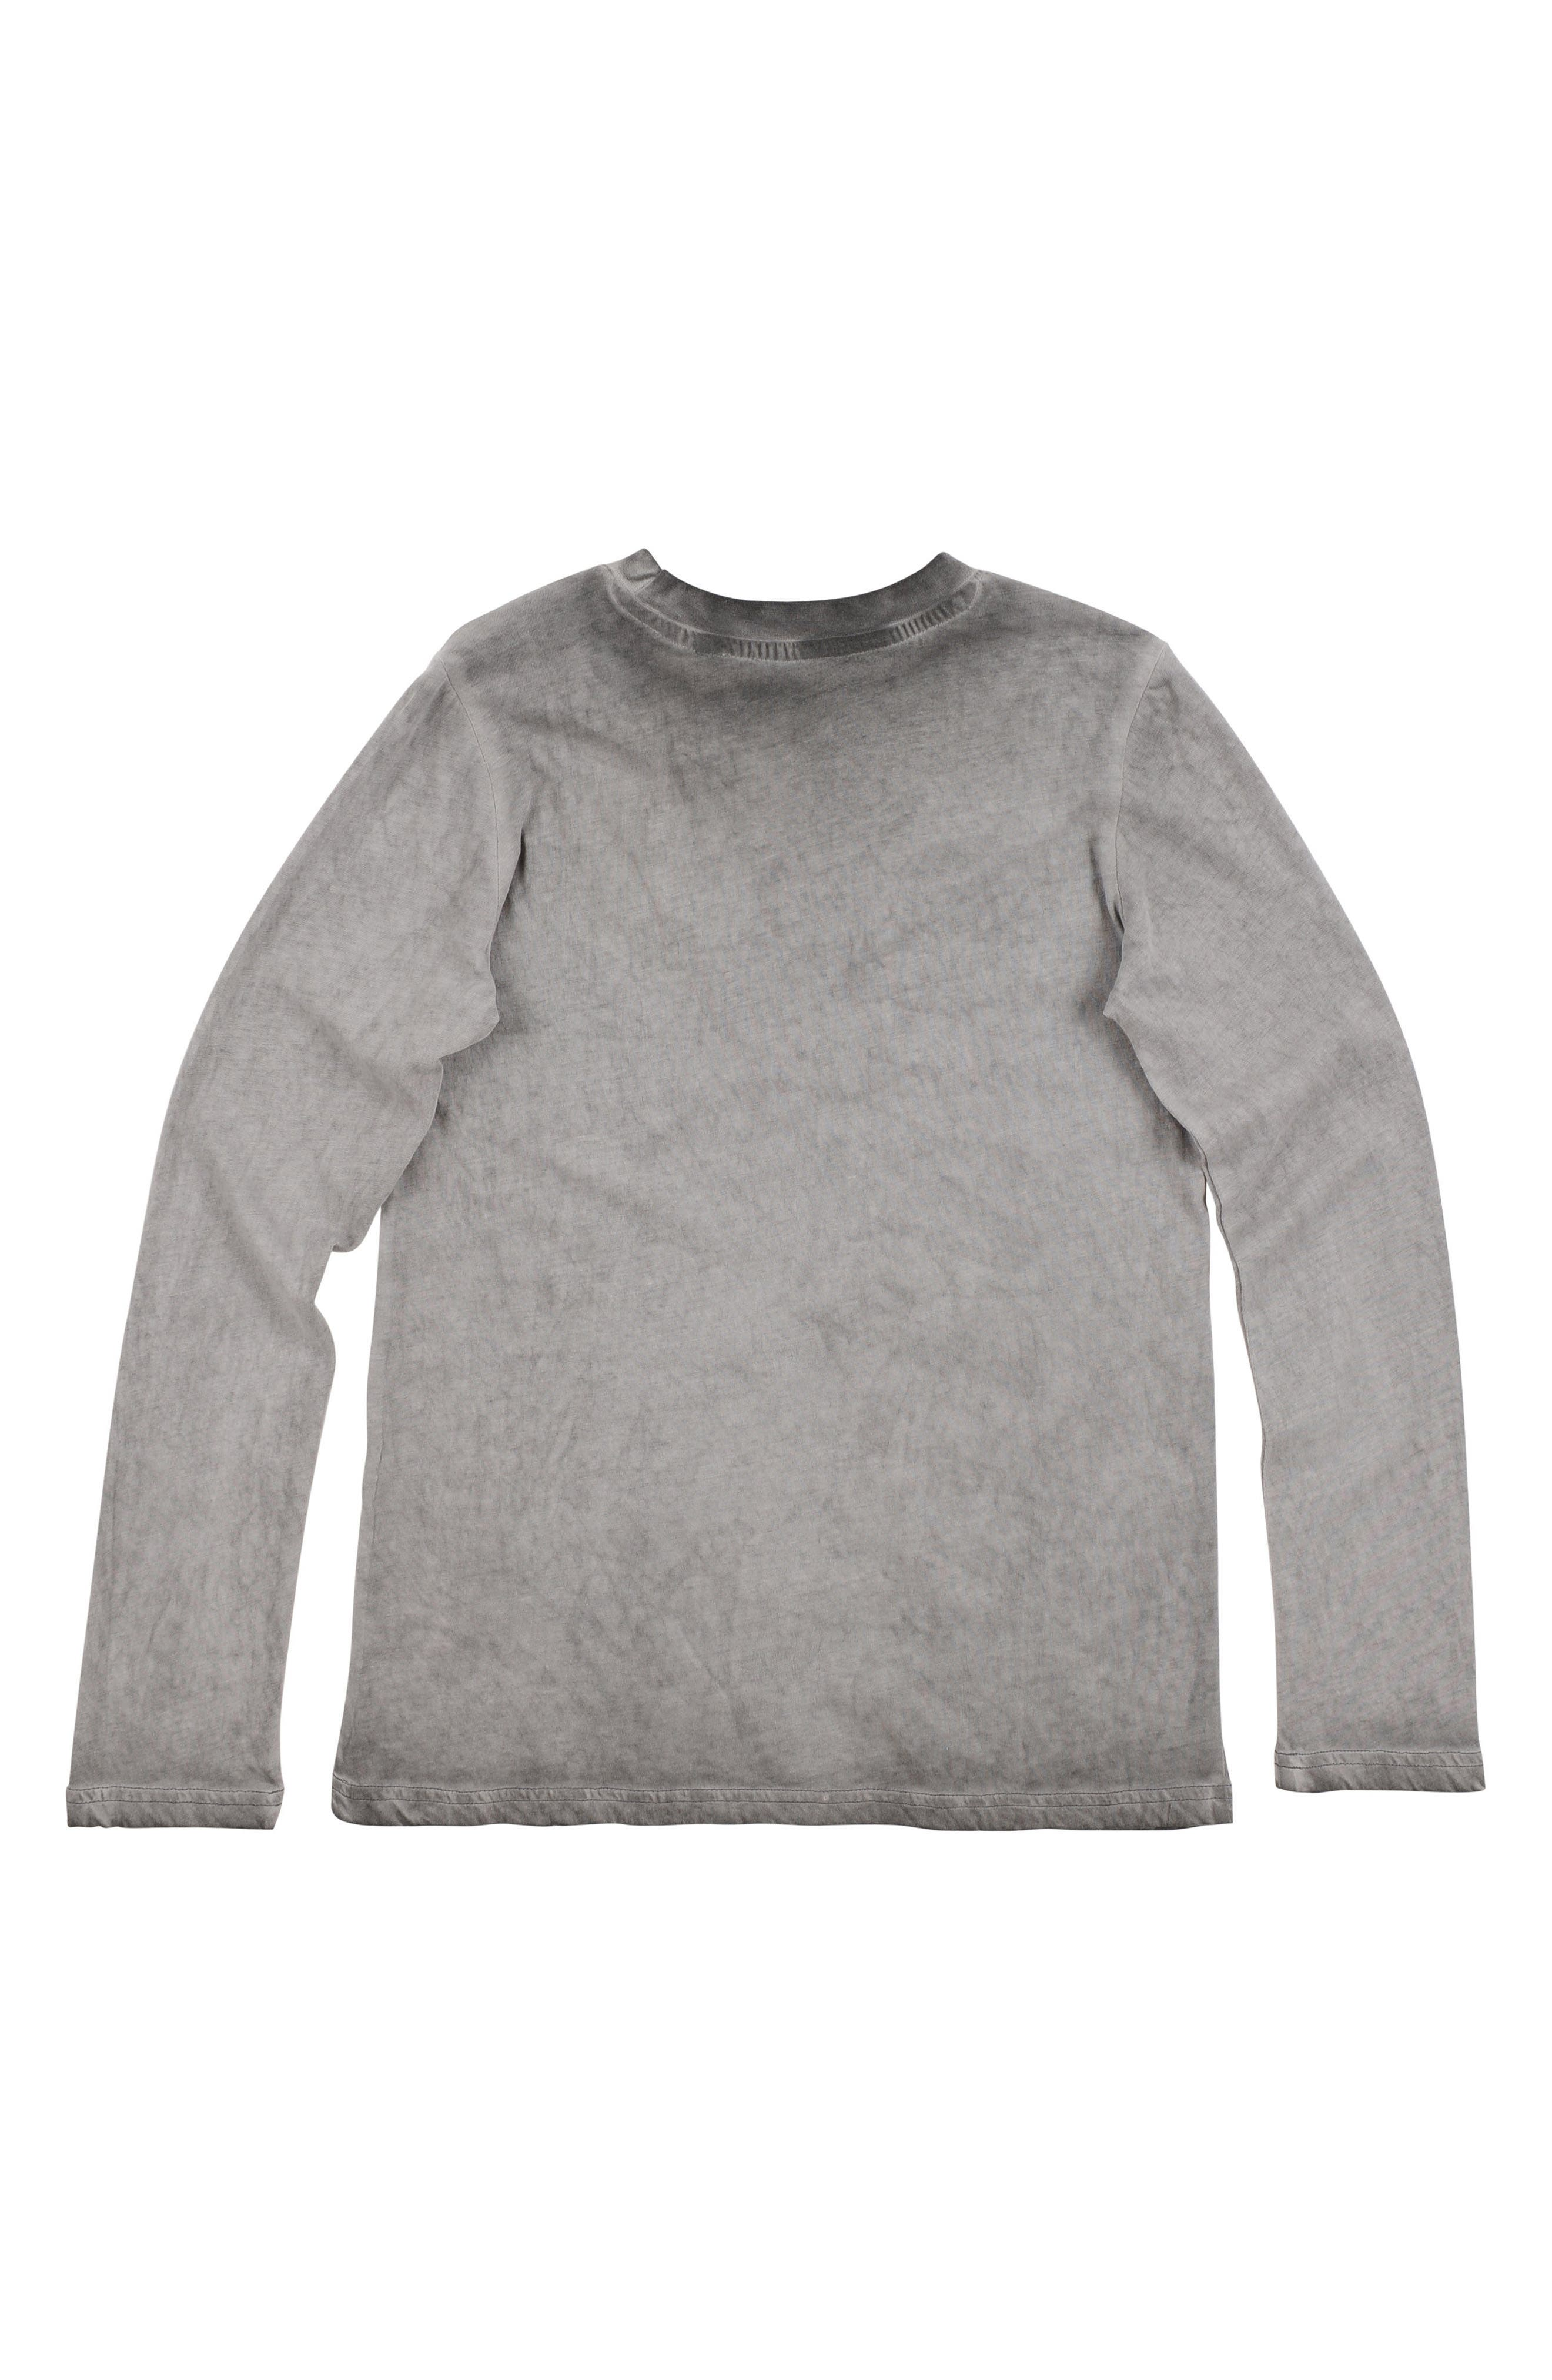 Alternate Image 2  - Butter Super Soft Sporty Graphic Long Sleeve T-Shirt (Big Boys)